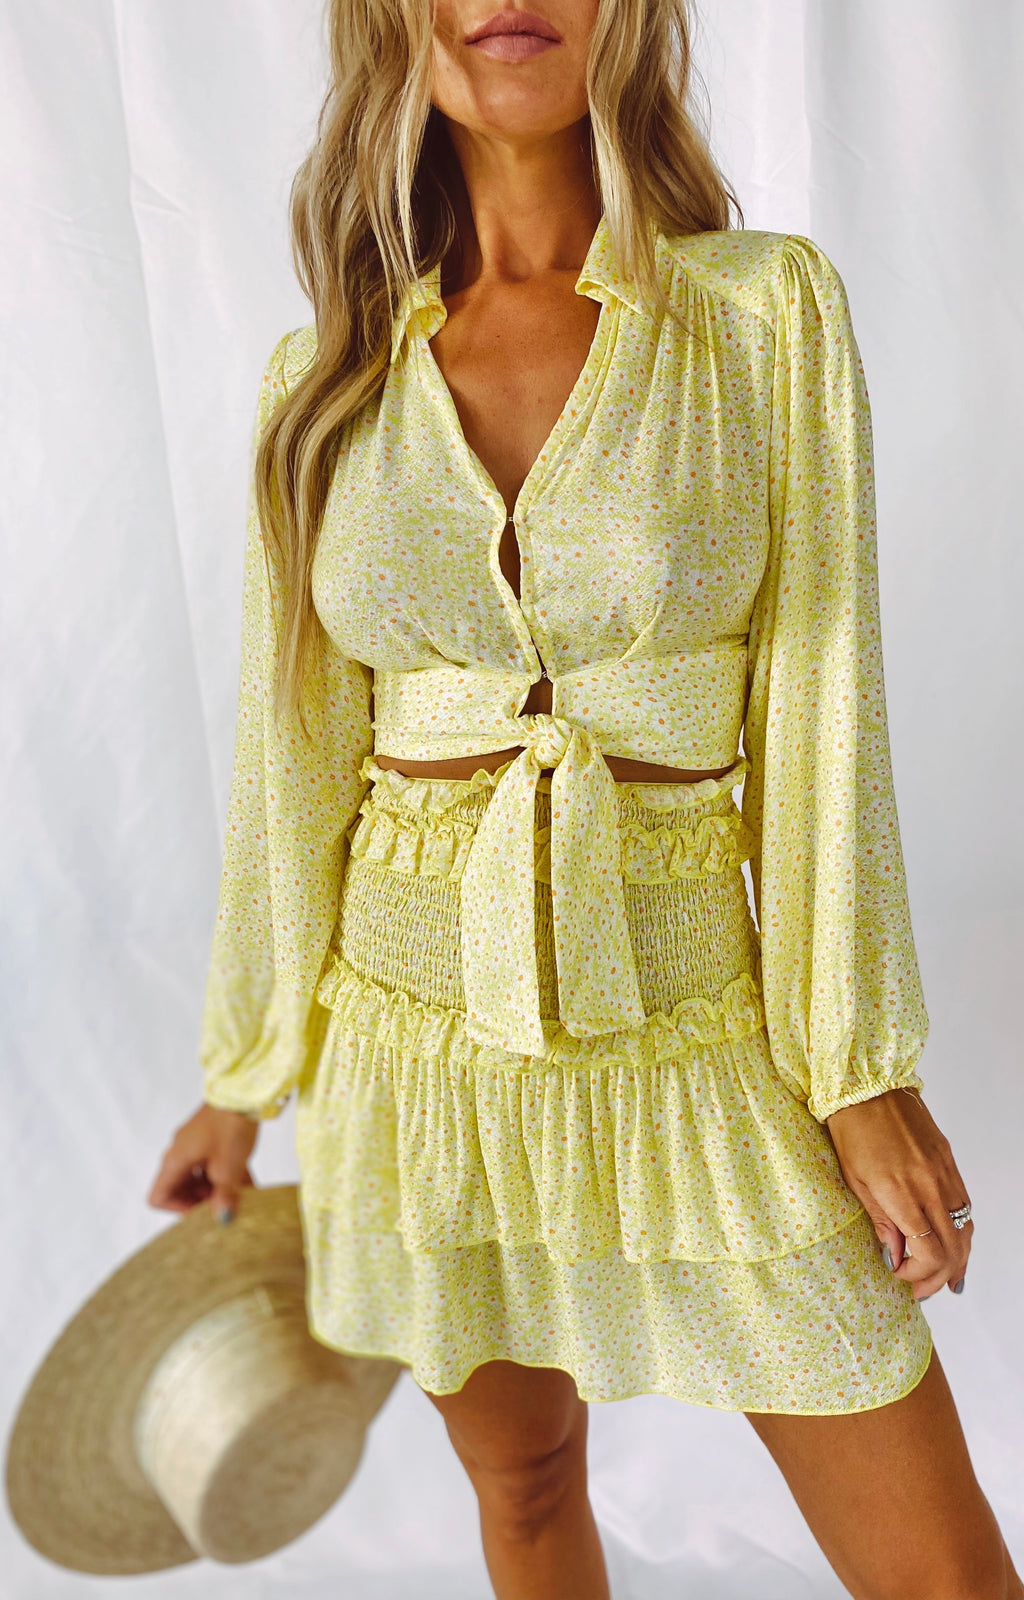 The Lemon Drop Daisy Skirt Set